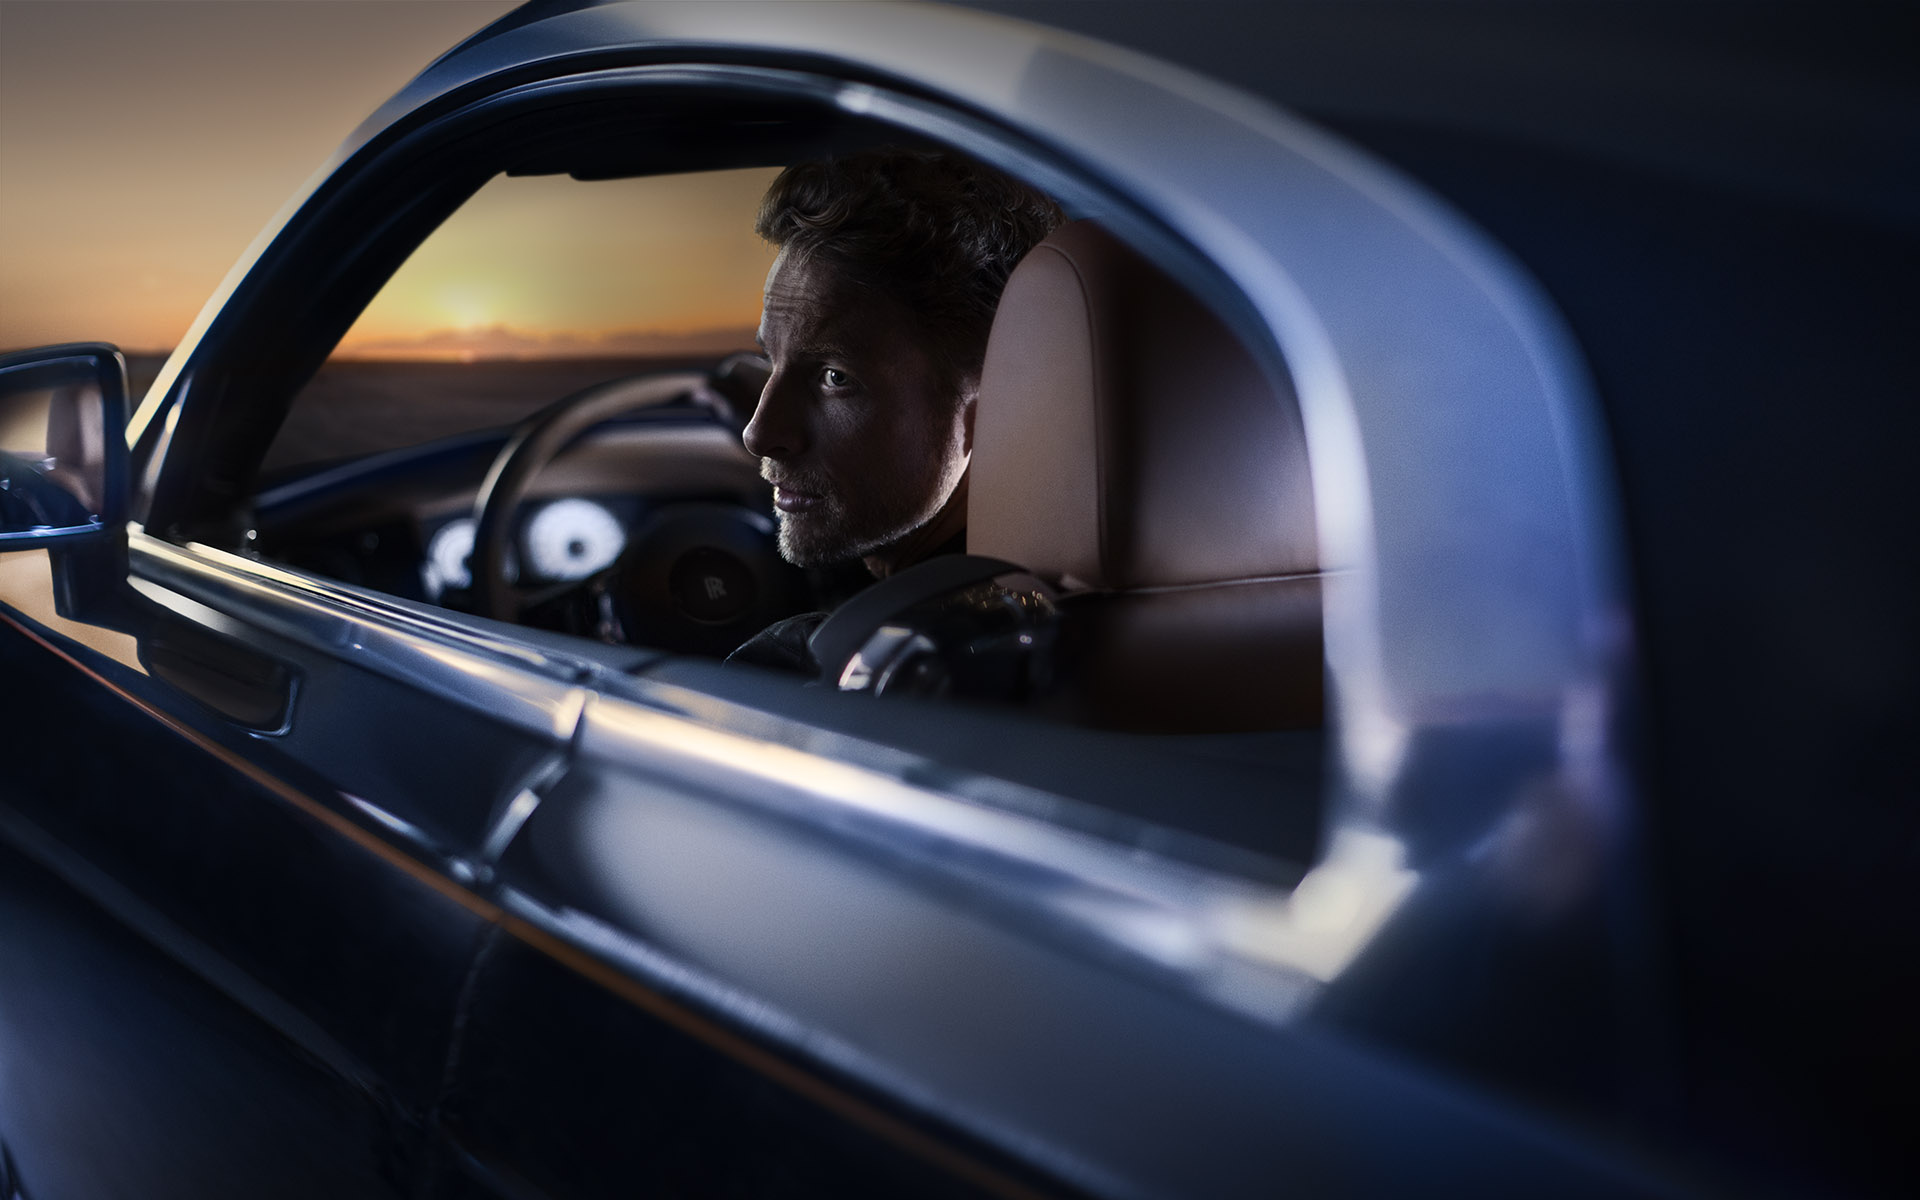 Rolls Royce Wraith: Jenson Button • Daughter Creative: Stuart Jackson/Gareth Hopkins • Creative agency: Intro • Art Direction: Julian Gibbs • Photography: Randall Slavin